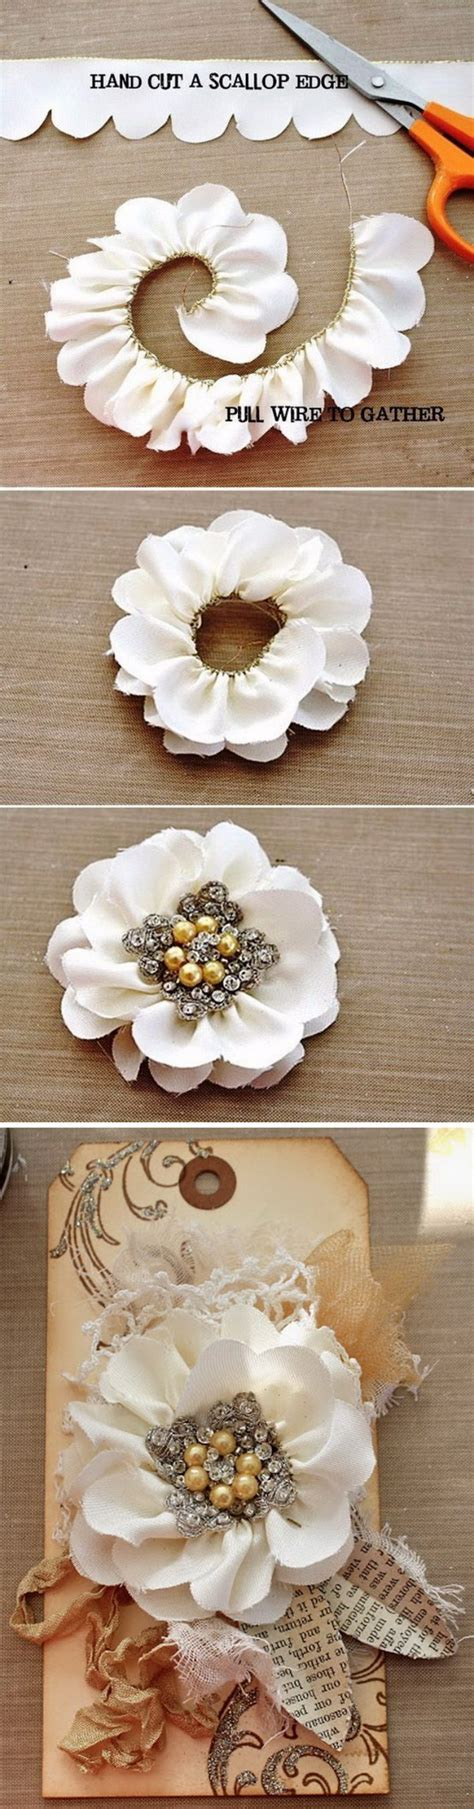 diy shabby chic ideas 55 awesome shabby chic decor diy ideas projects 2017